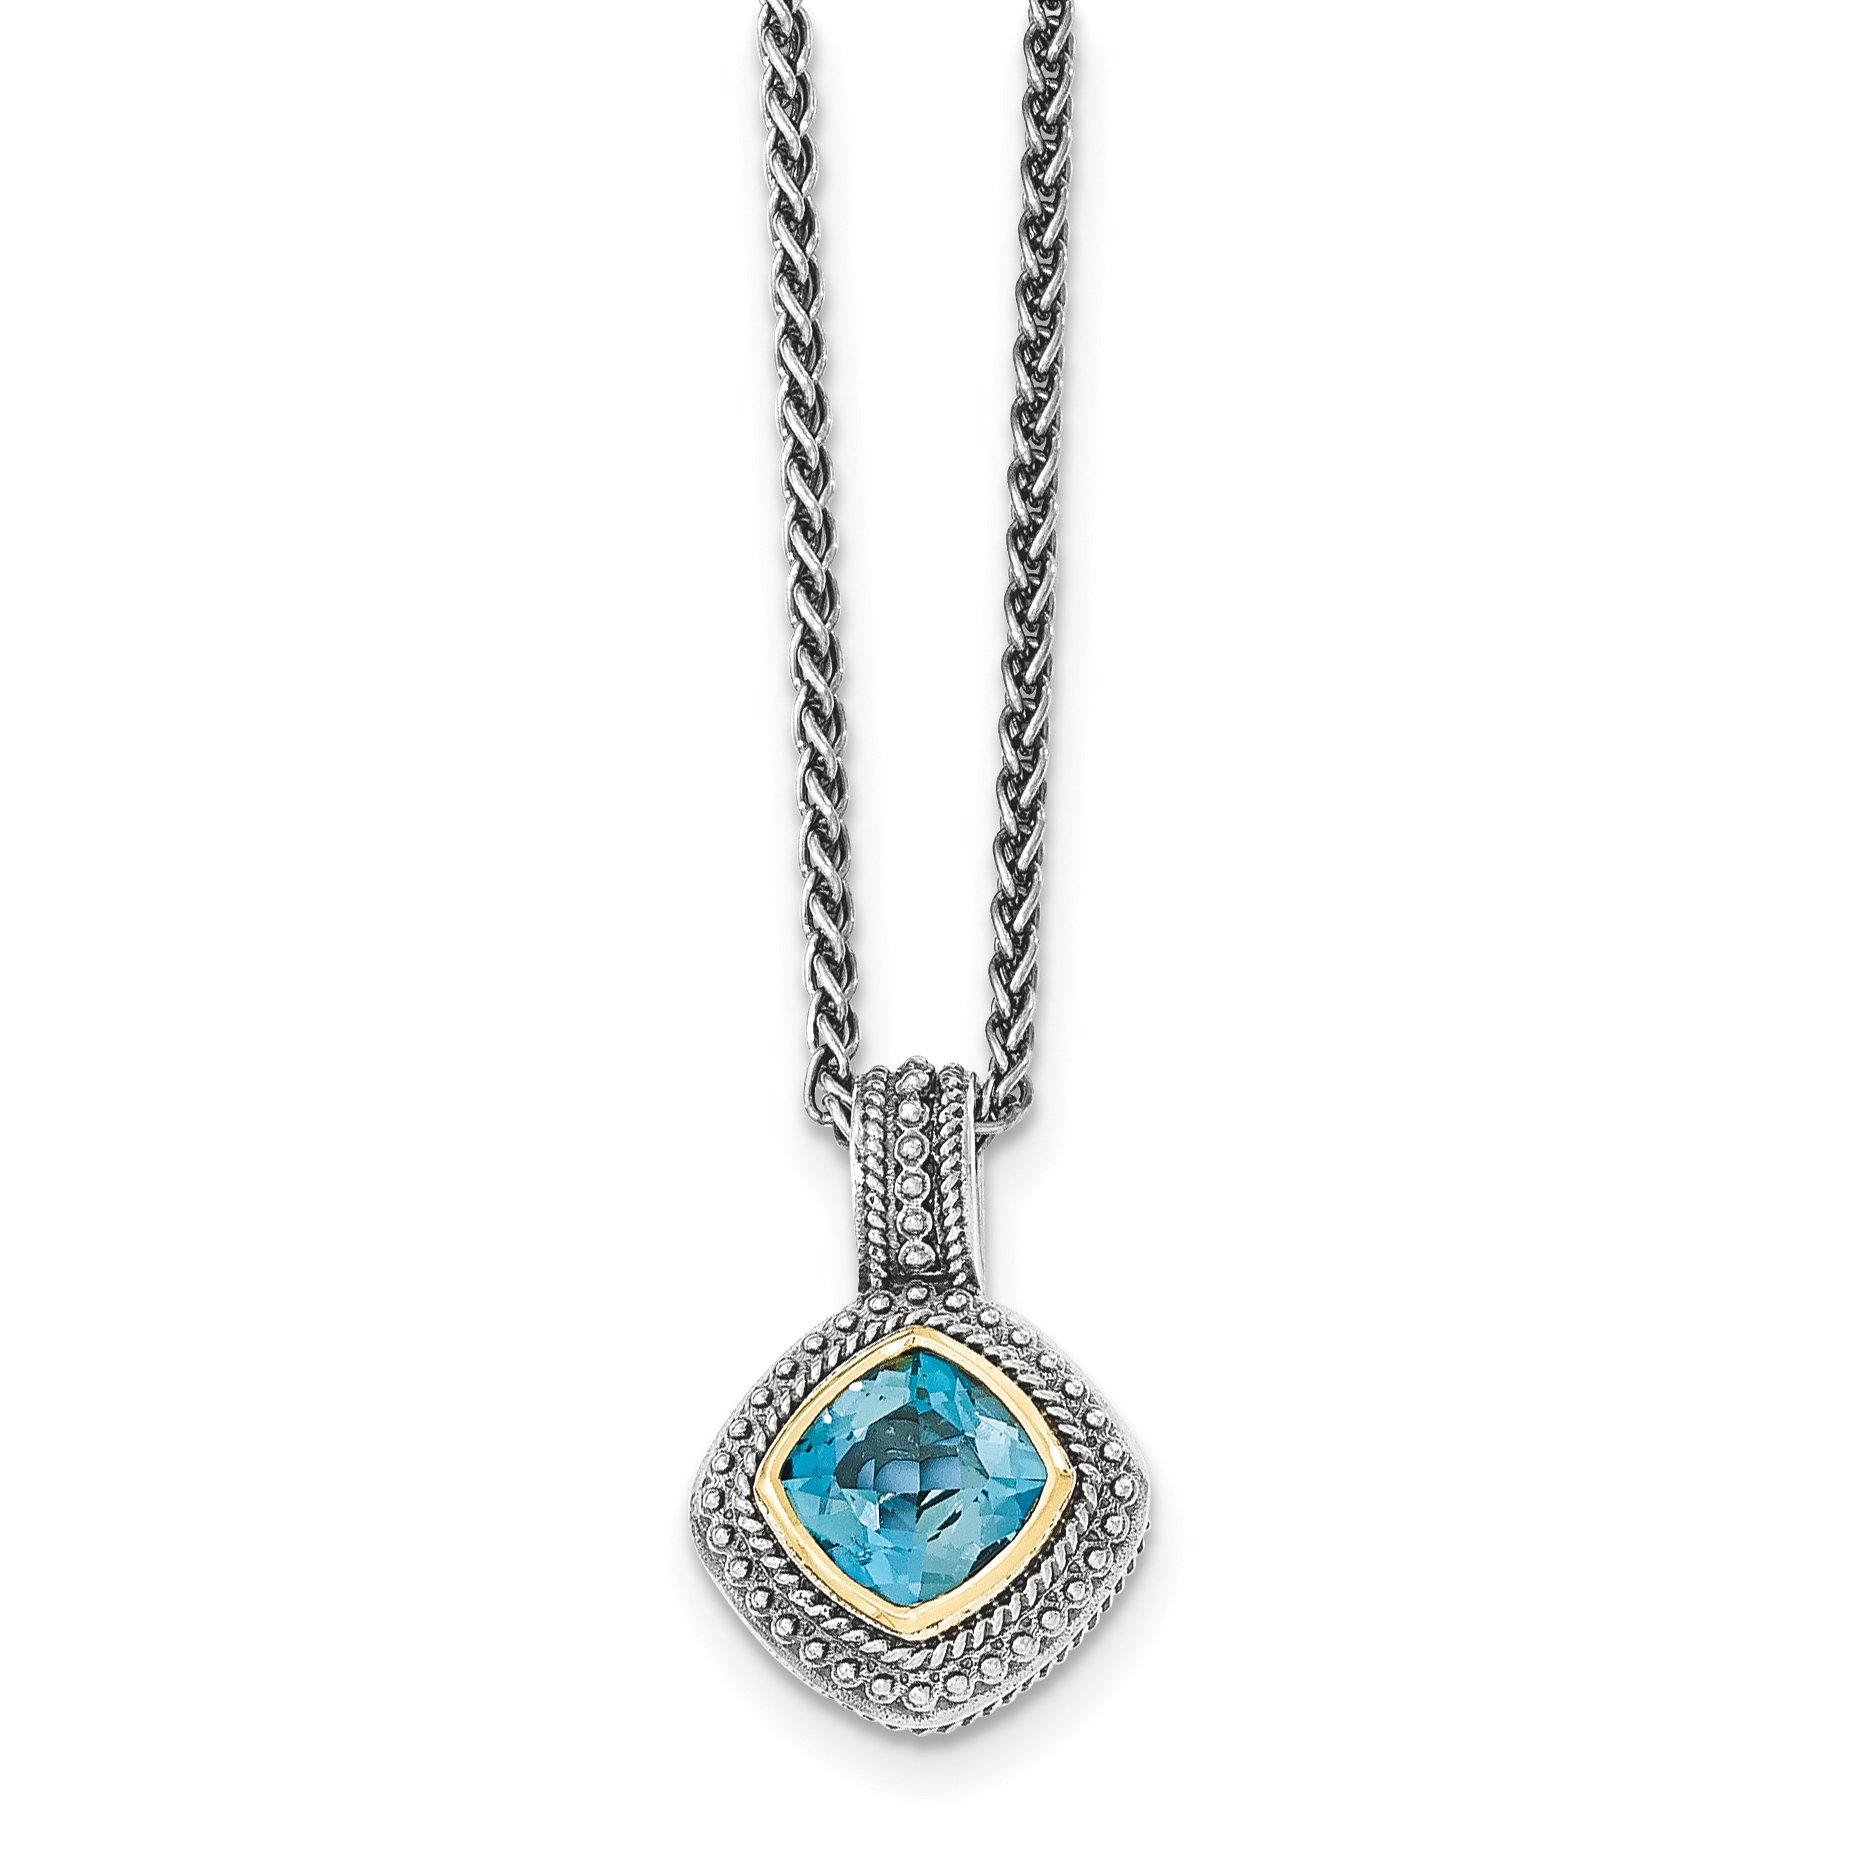 ICE CARATS 925 Sterling Silver 14k London Blue Topaz Chain Necklace Gemstone